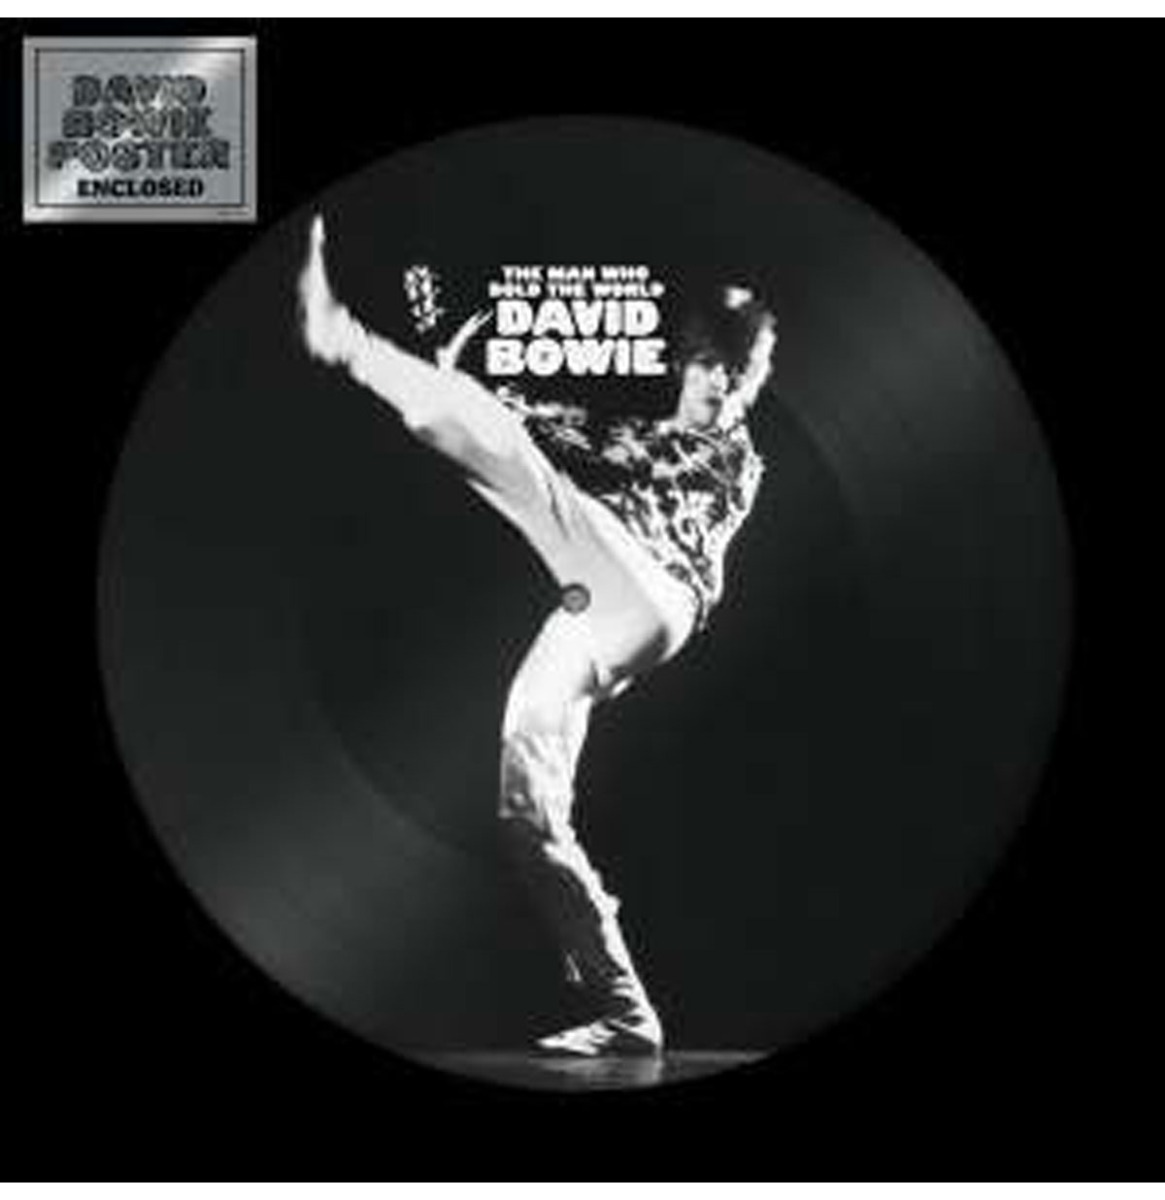 David Bowie - The Man Who Sold The World Picture Disc LP